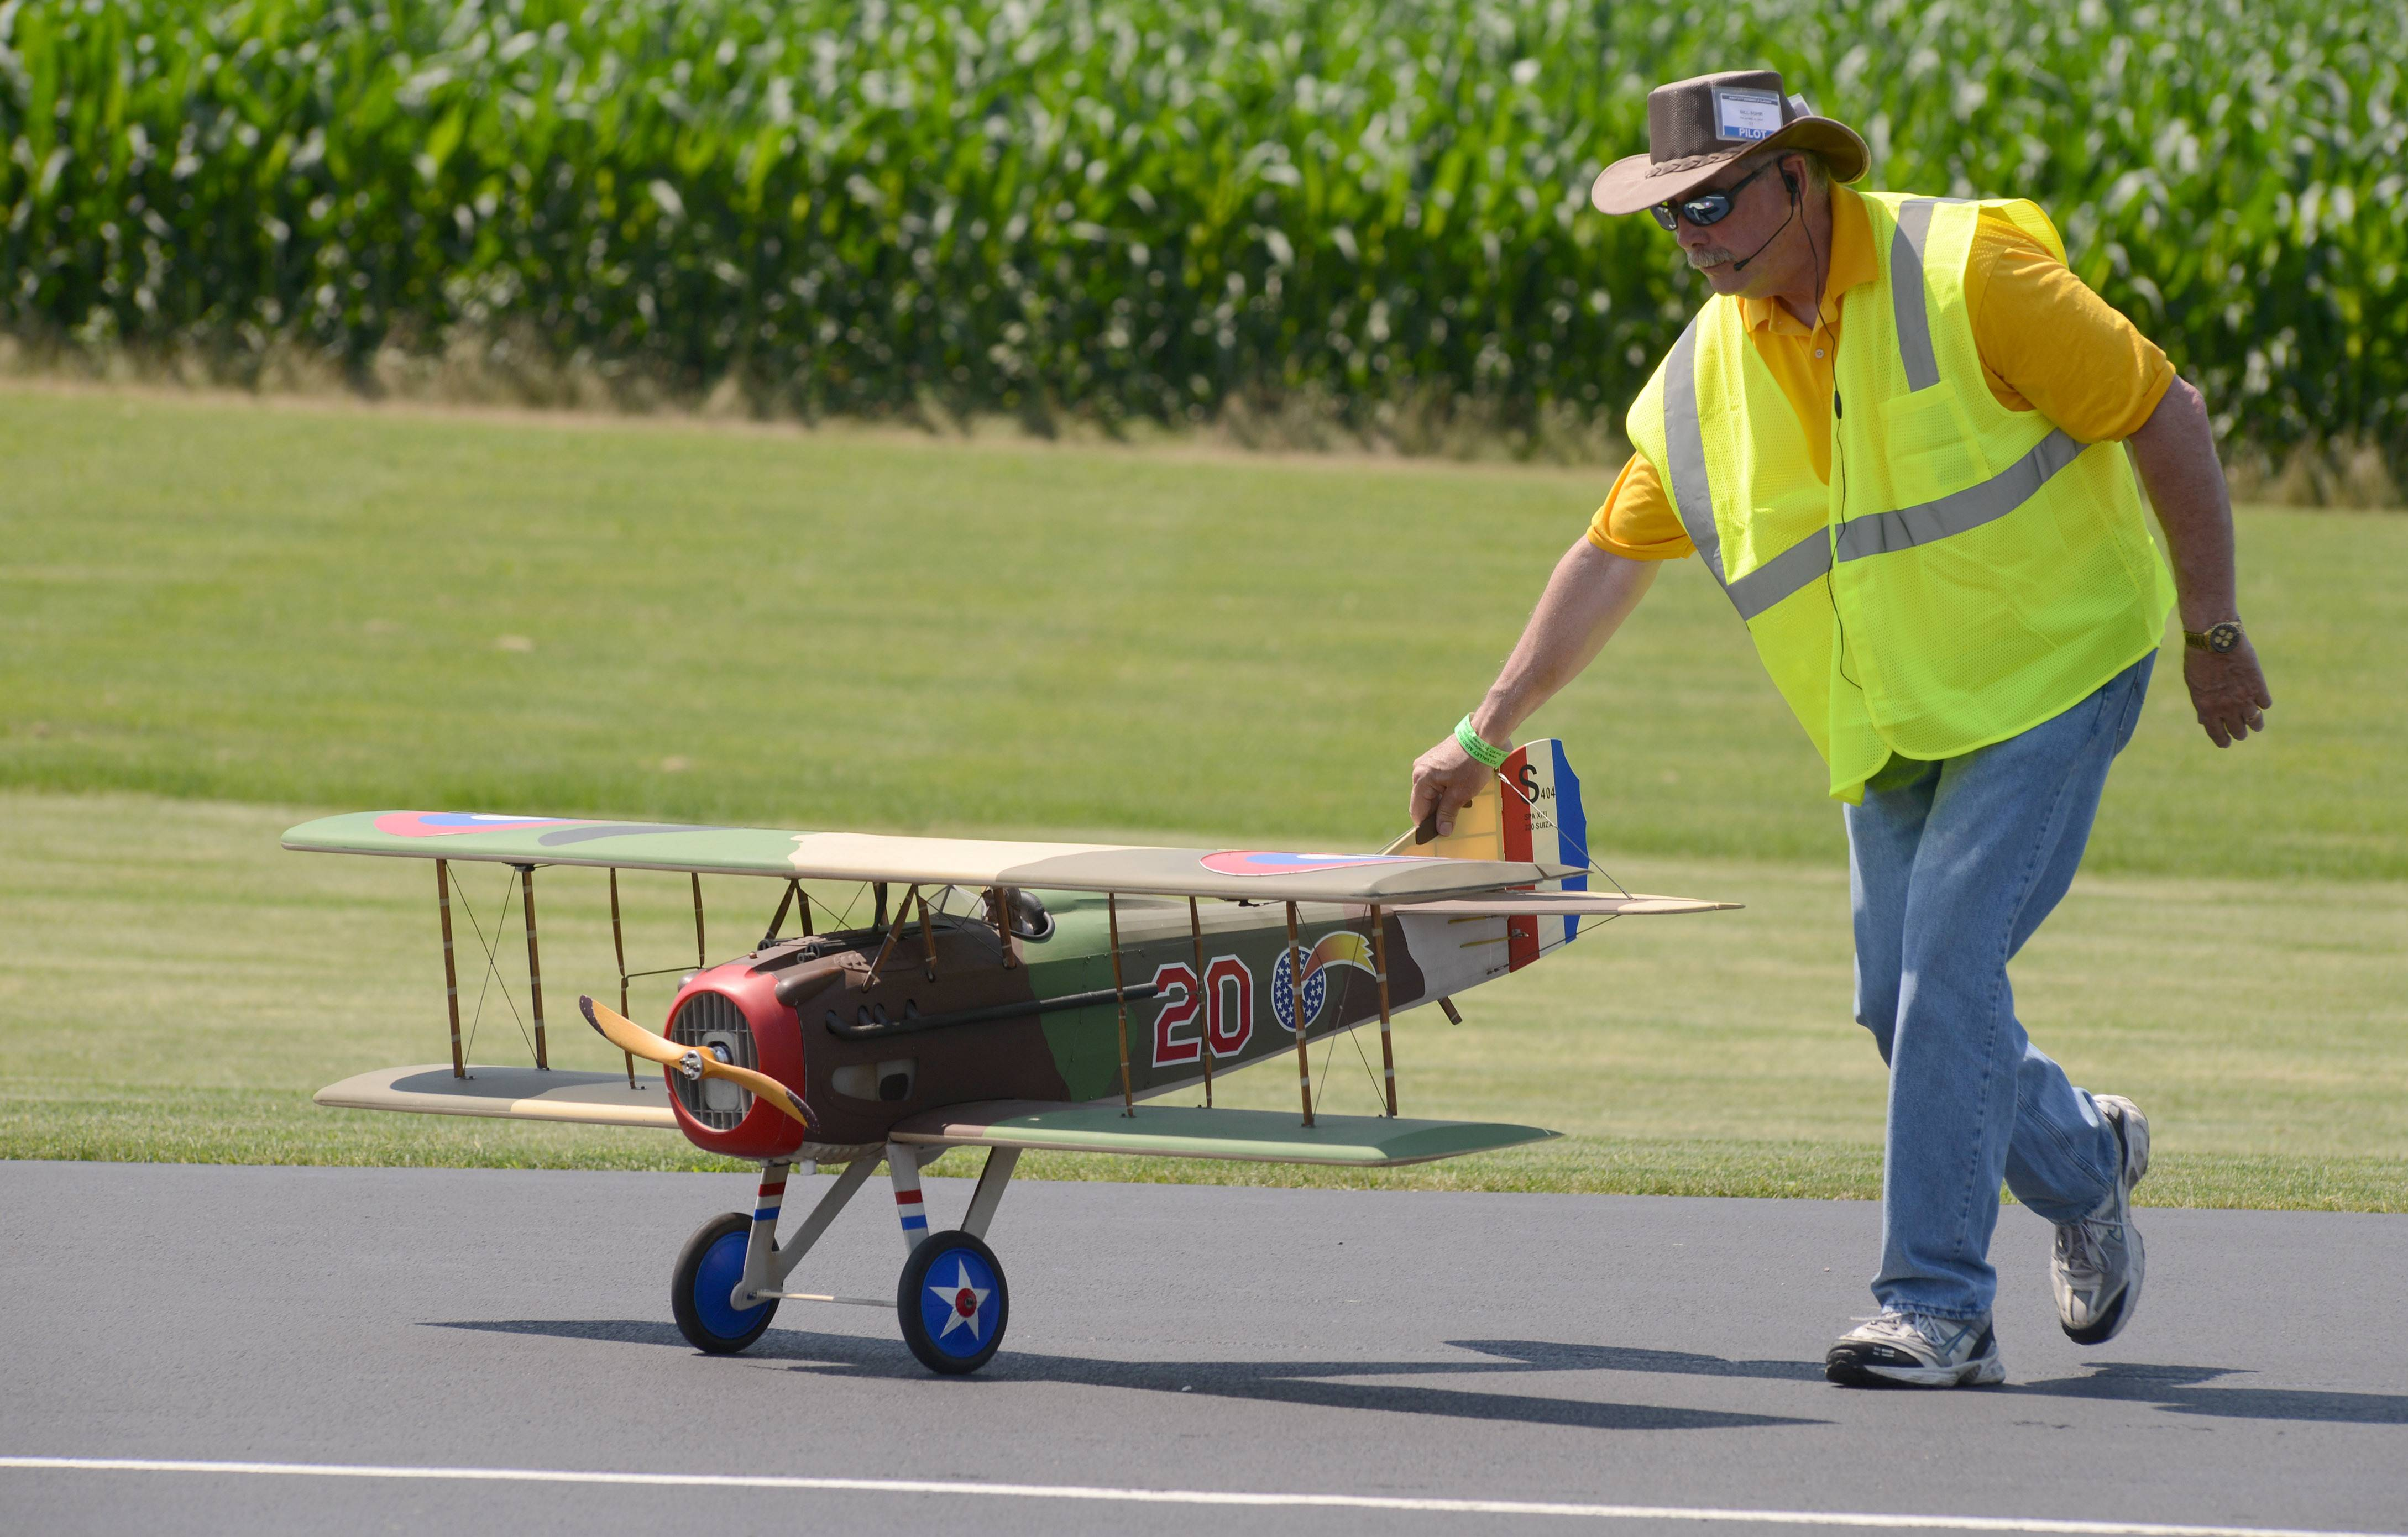 "Bill Suhr of Palatine retrieves a SPAD 13 biplane (World War I era) from the landing strip, serving as ""air boss for retrieval"" at the Fox Valley Aero Club's Windy City Warbird and Classics model airplane show Friday in St. Charles. Suhr, a member of the club for the past three years, has been flying model planes since 1975. The plane is owned by Chad Asmus of Menomonie, Wisconsin, who has flown with the club several times."